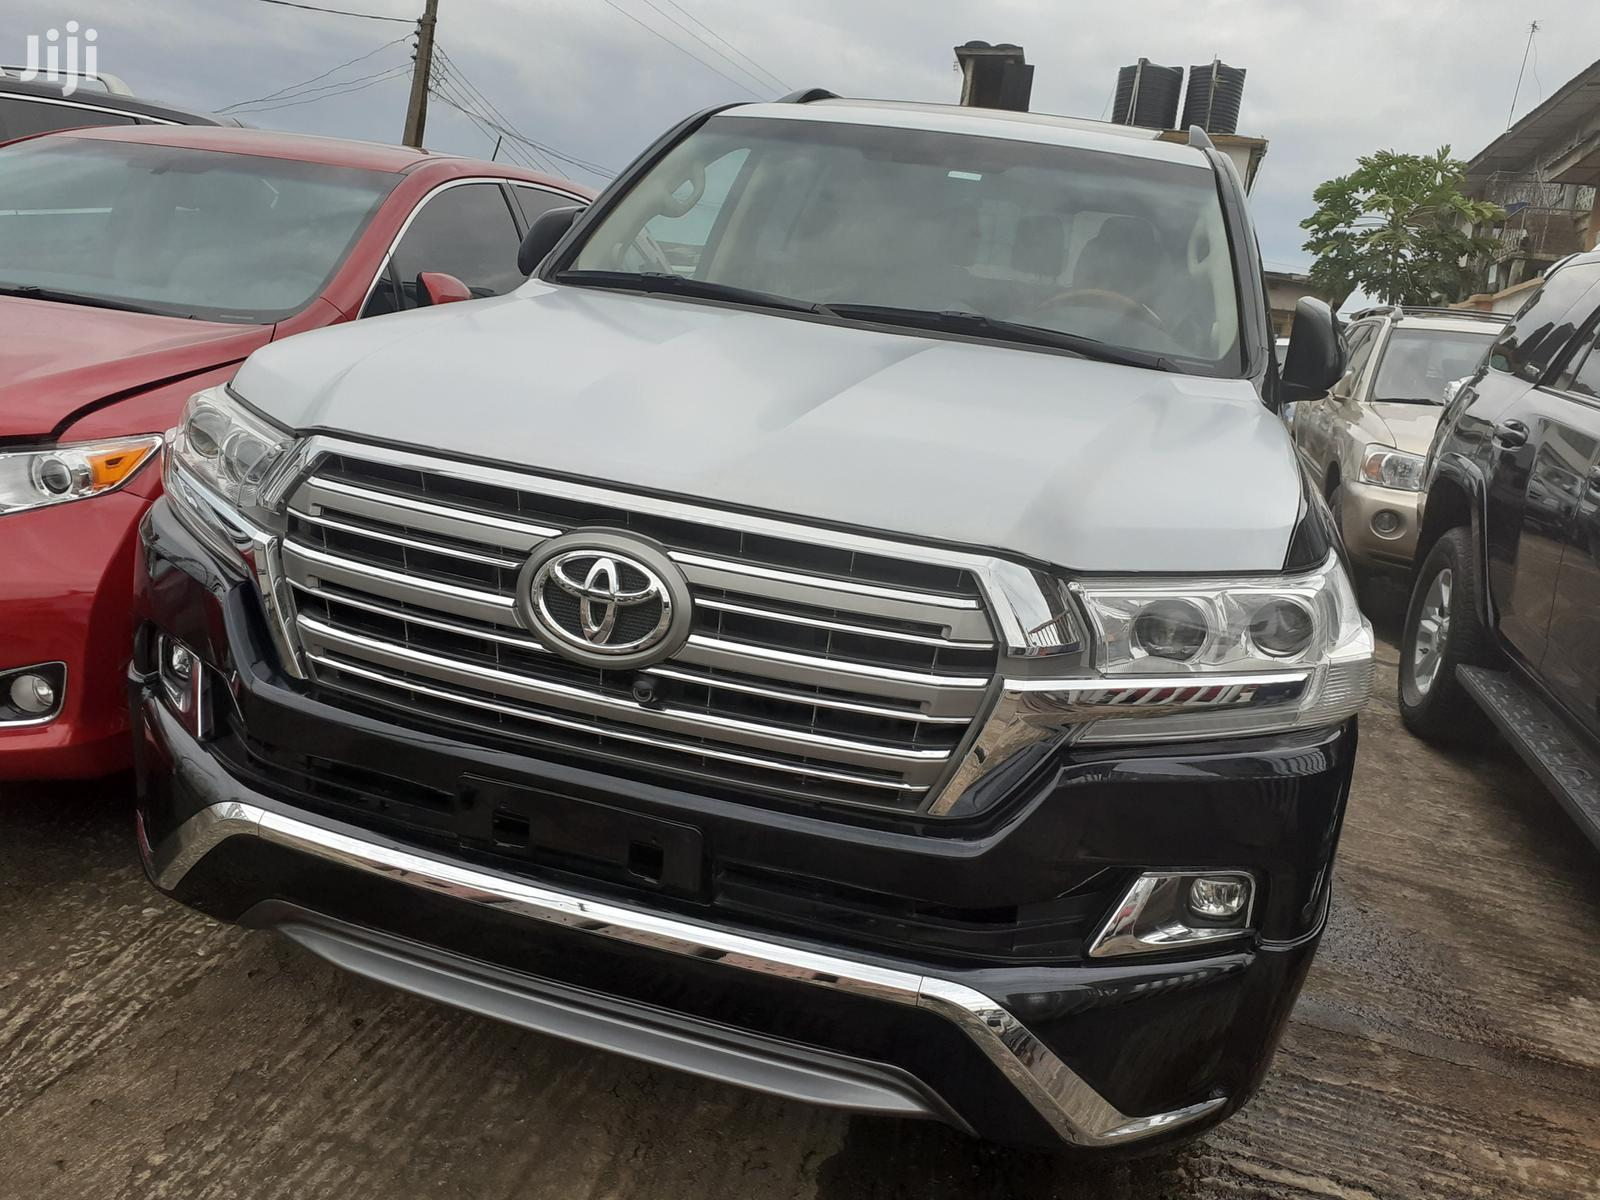 Toyota Land Cruiser 2018 Black | Cars for sale in Ibadan, Oyo State, Nigeria